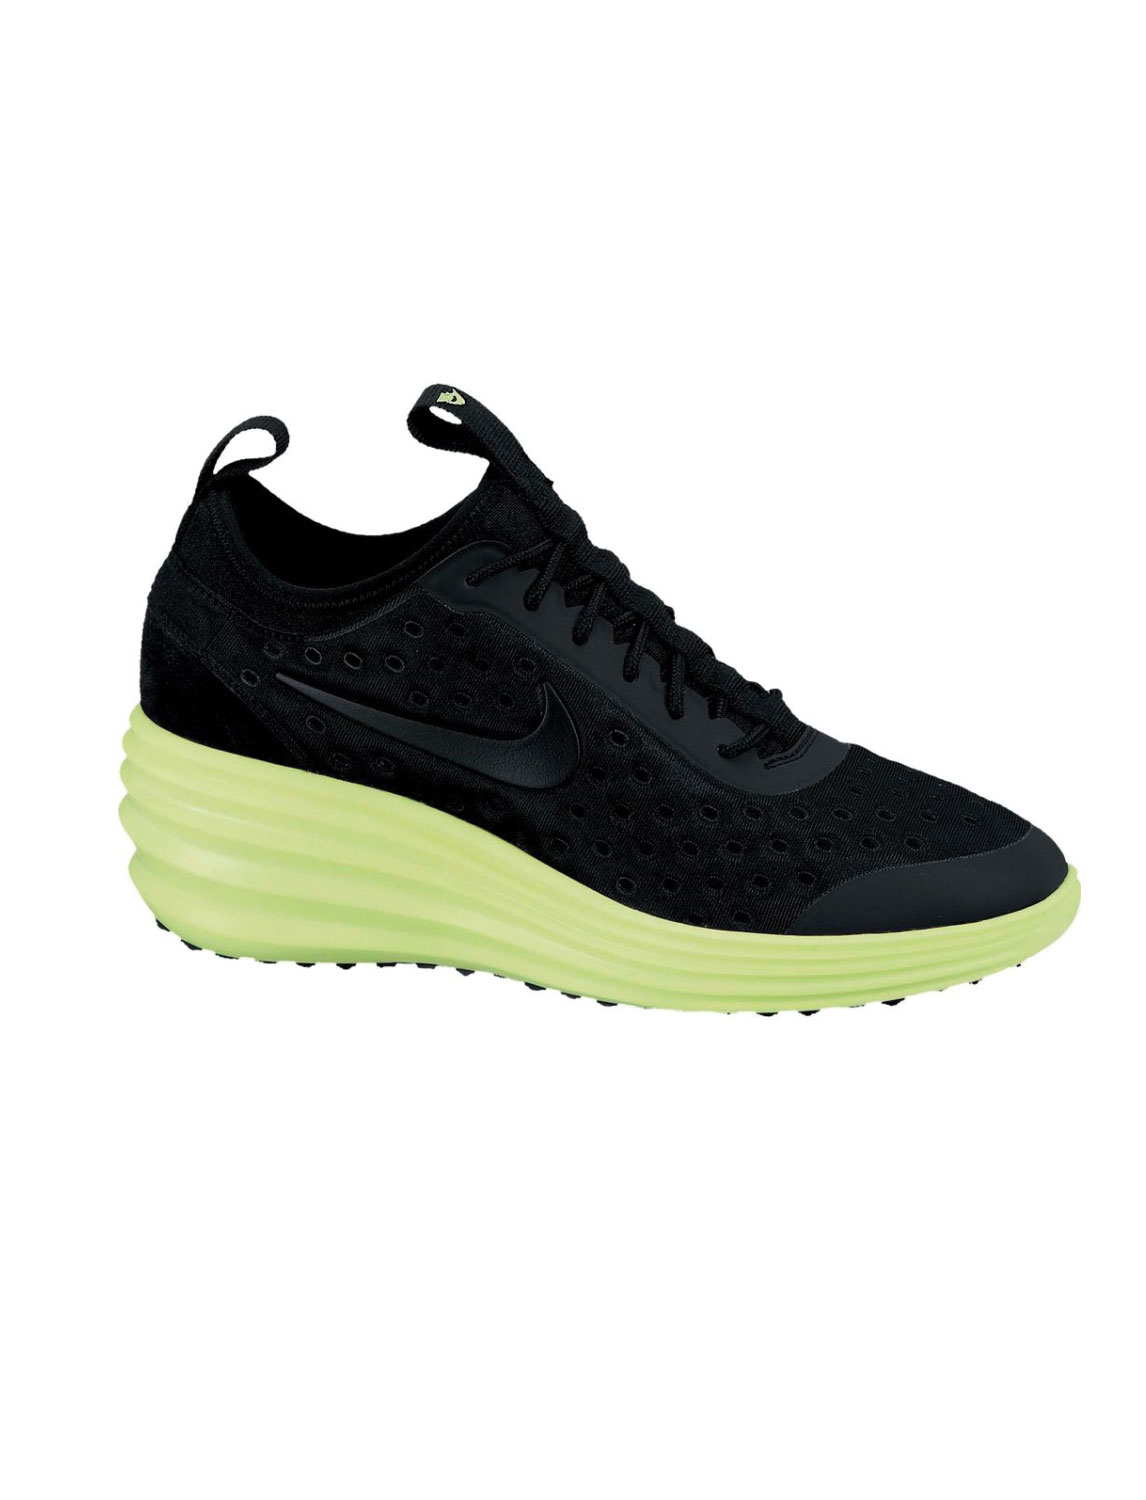 wholesale dealer b542e 70a74 HomeShopShoesWedgesNIKE Lunarelite Sky. 34%. prev